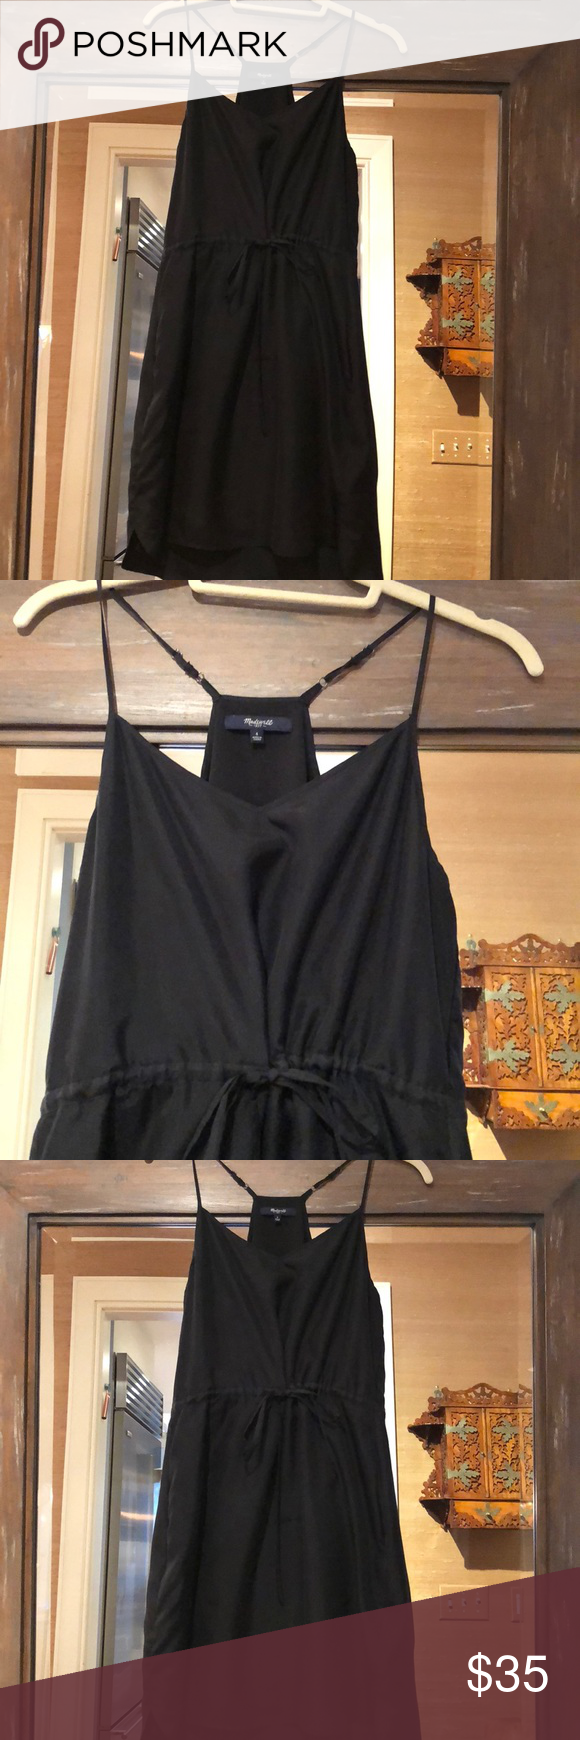 Madewell silk black cinched waist short sundress Like new black silk sundress sits above knee and has flattering v - camisole neckline with  adjustable silk straps Madewell Dresses Mini #shortsundress